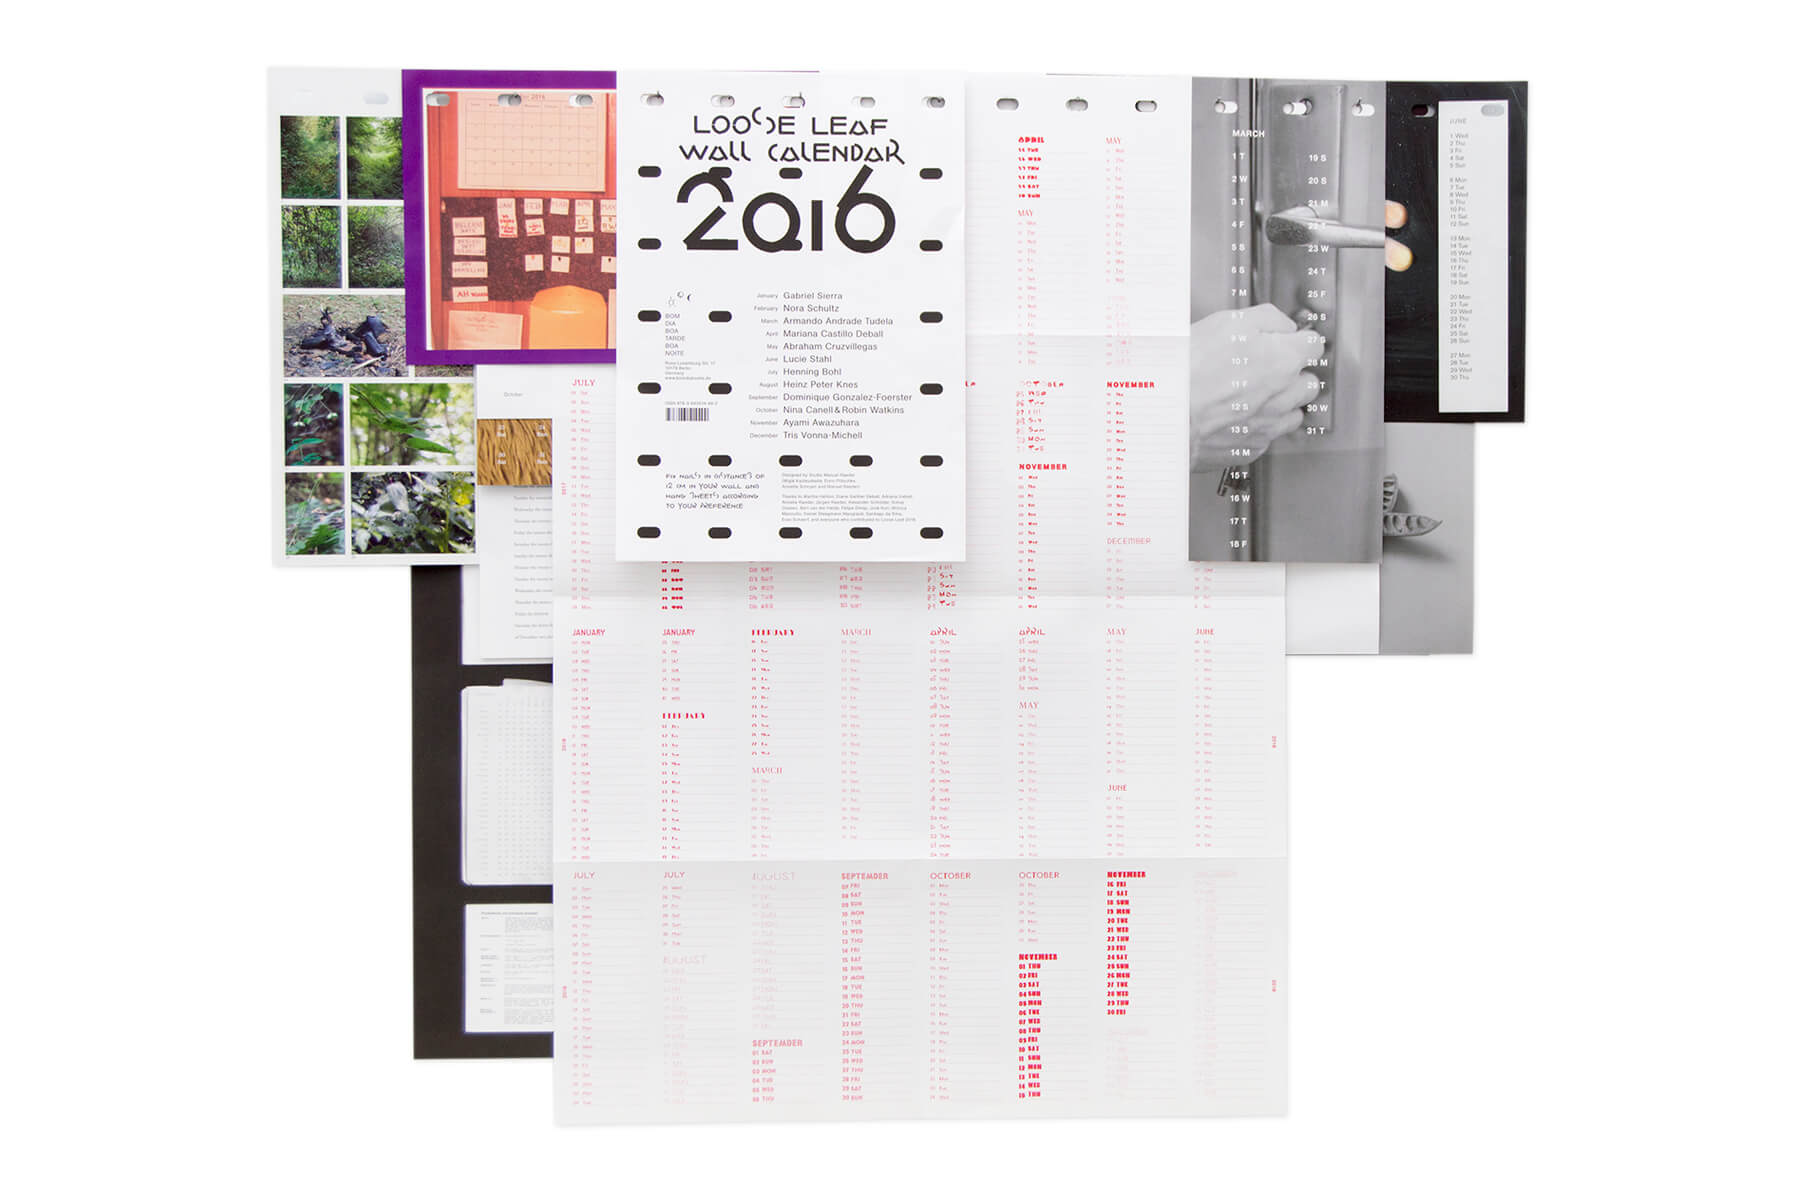 Product image of Loose Leaf Wall Calendar 2016